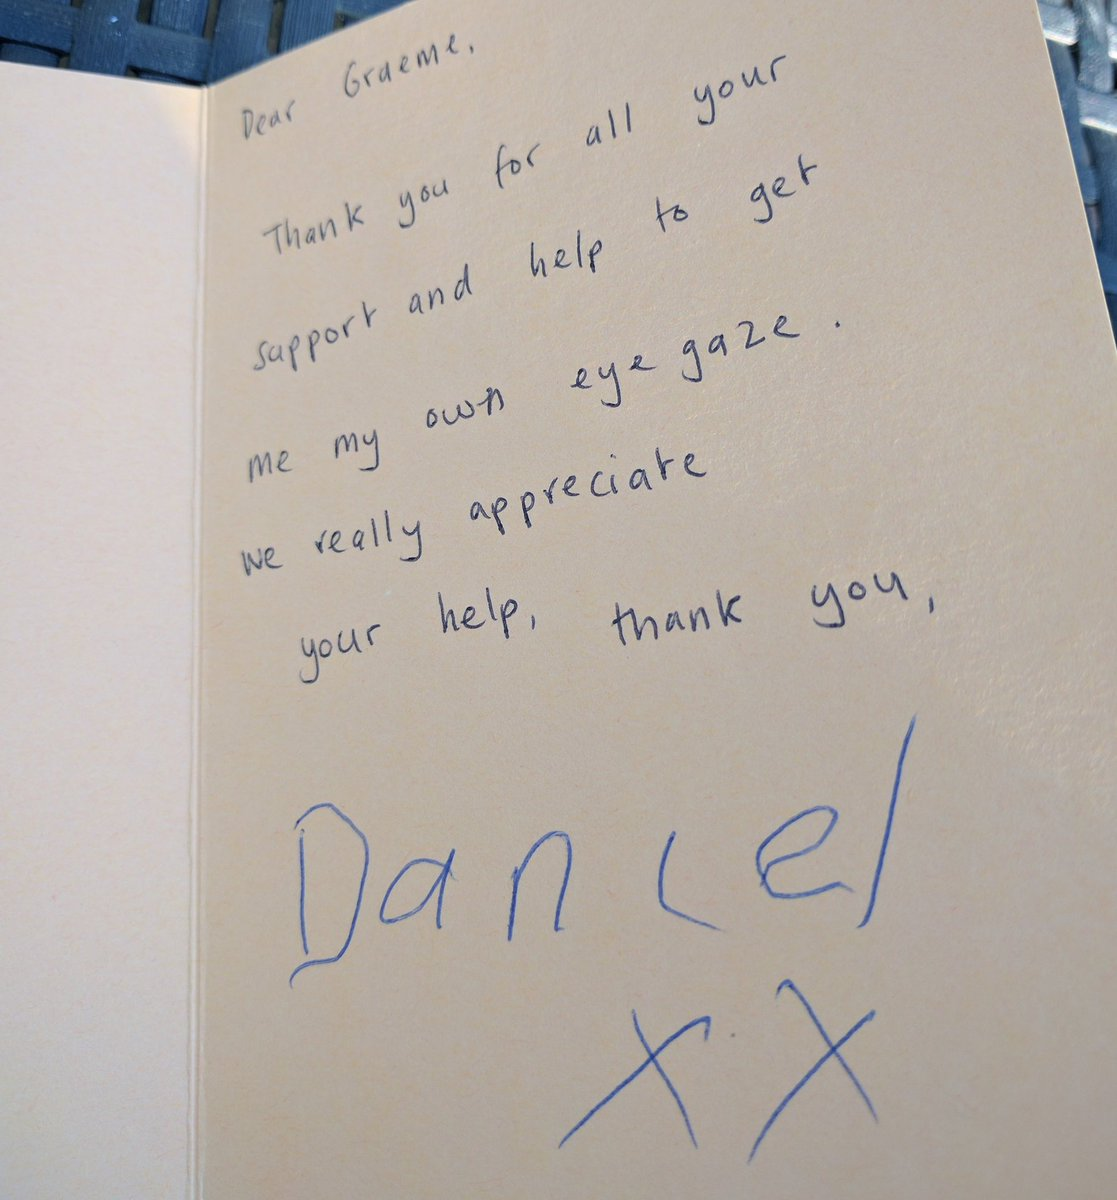 Humbled to receive this thank you card today from an amazing new client #thinksmartbox #CHAS #dicoveringhiddenpotential<br>http://pic.twitter.com/7JhjCW06B8